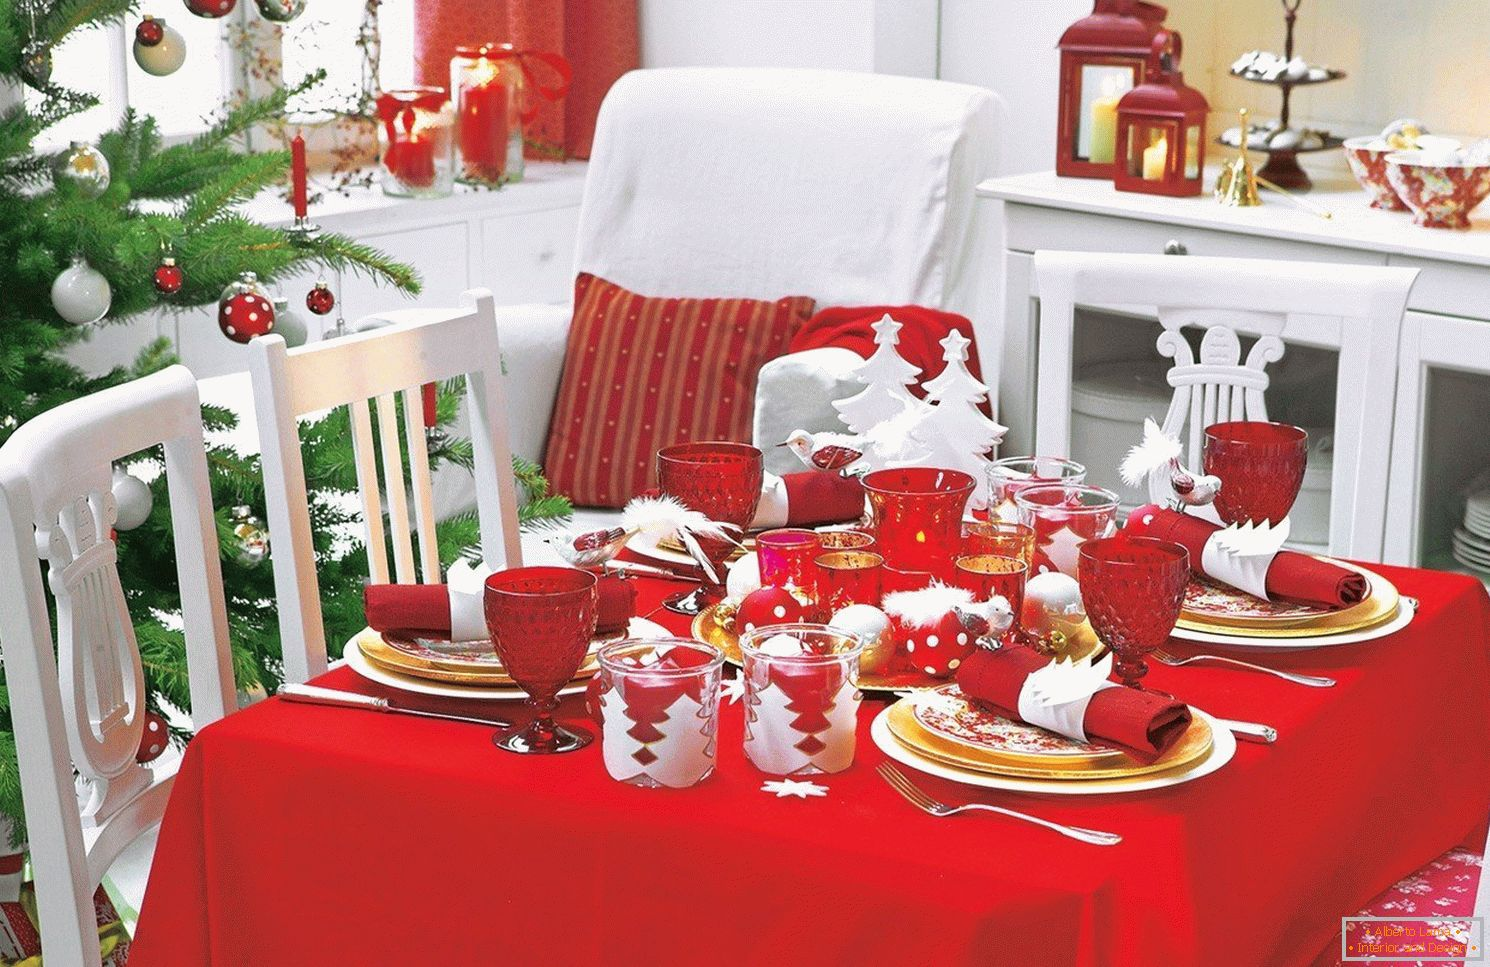 Decoration of a New Year's table in red color